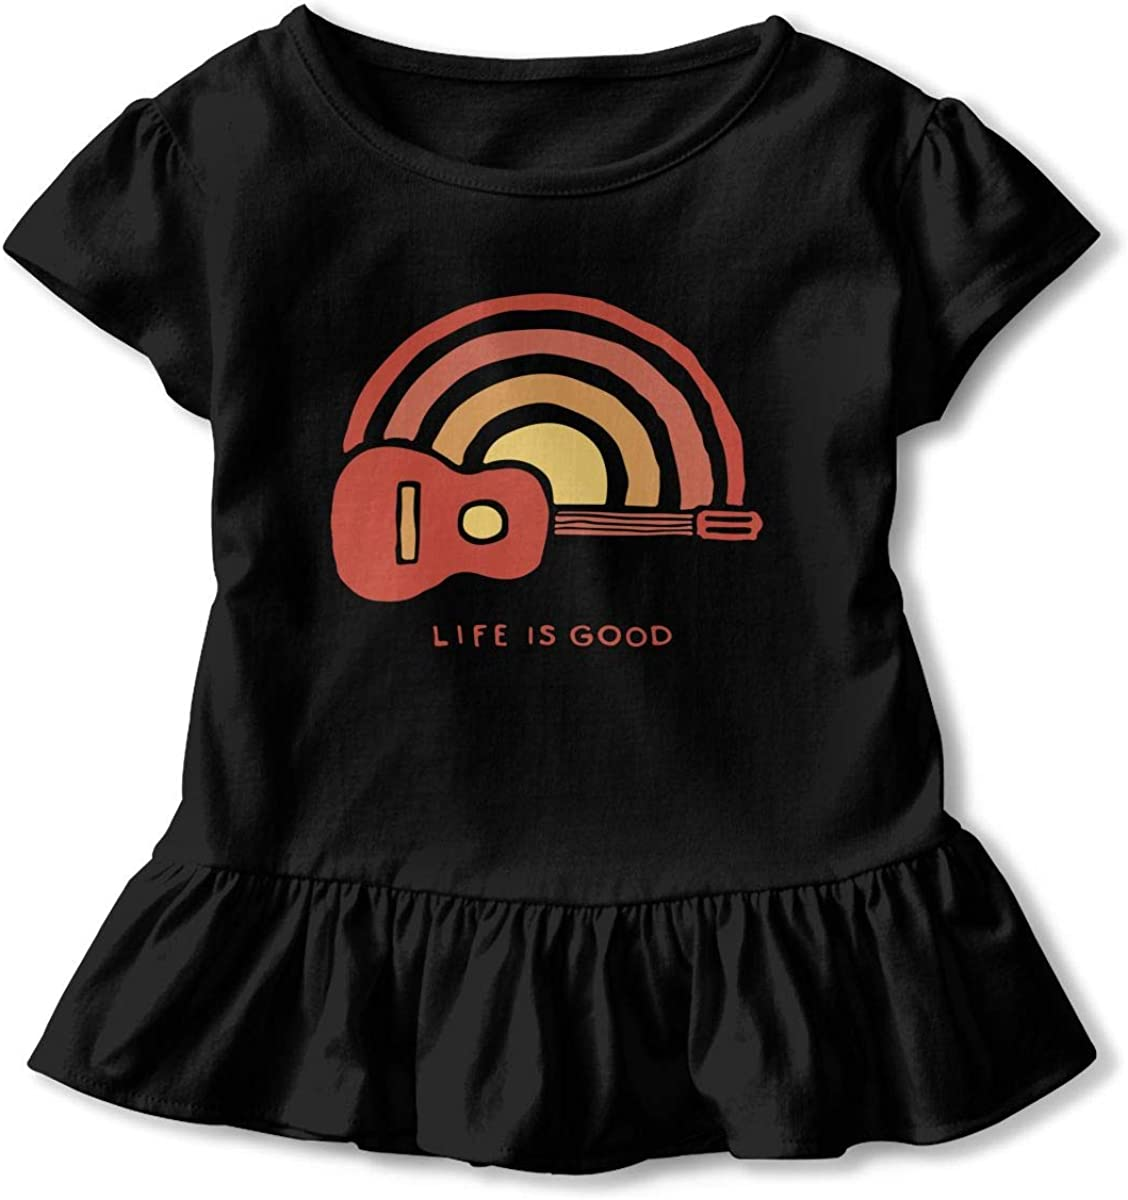 Sunrise Guitar Life Toddler Girls T Shirt Kids Cotton Short Sleeve Ruffle Tee